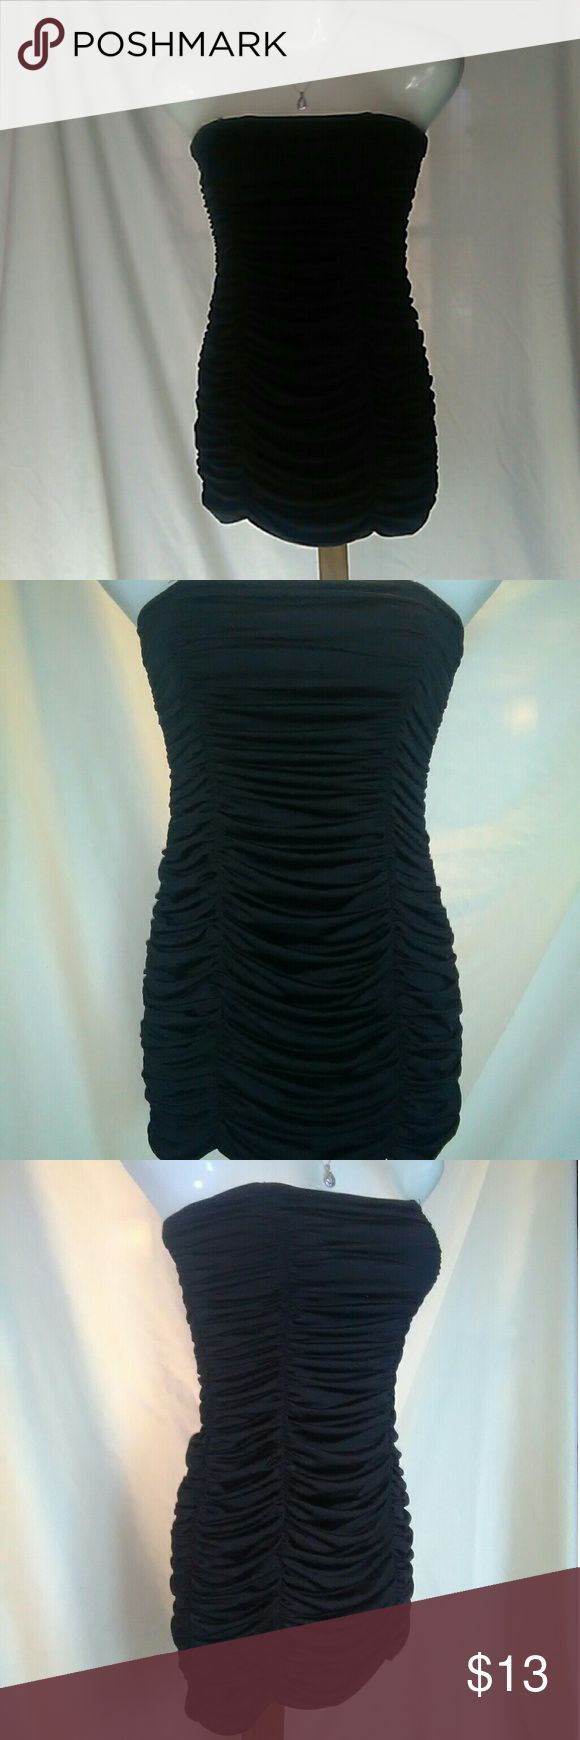 Super cute body hugging dress by twenty-one Super cute strapless black club dress by twenty-one size M made of 96% polyester 4 % Spandex in perfect used condition worn once twenty-one Dresses Mini